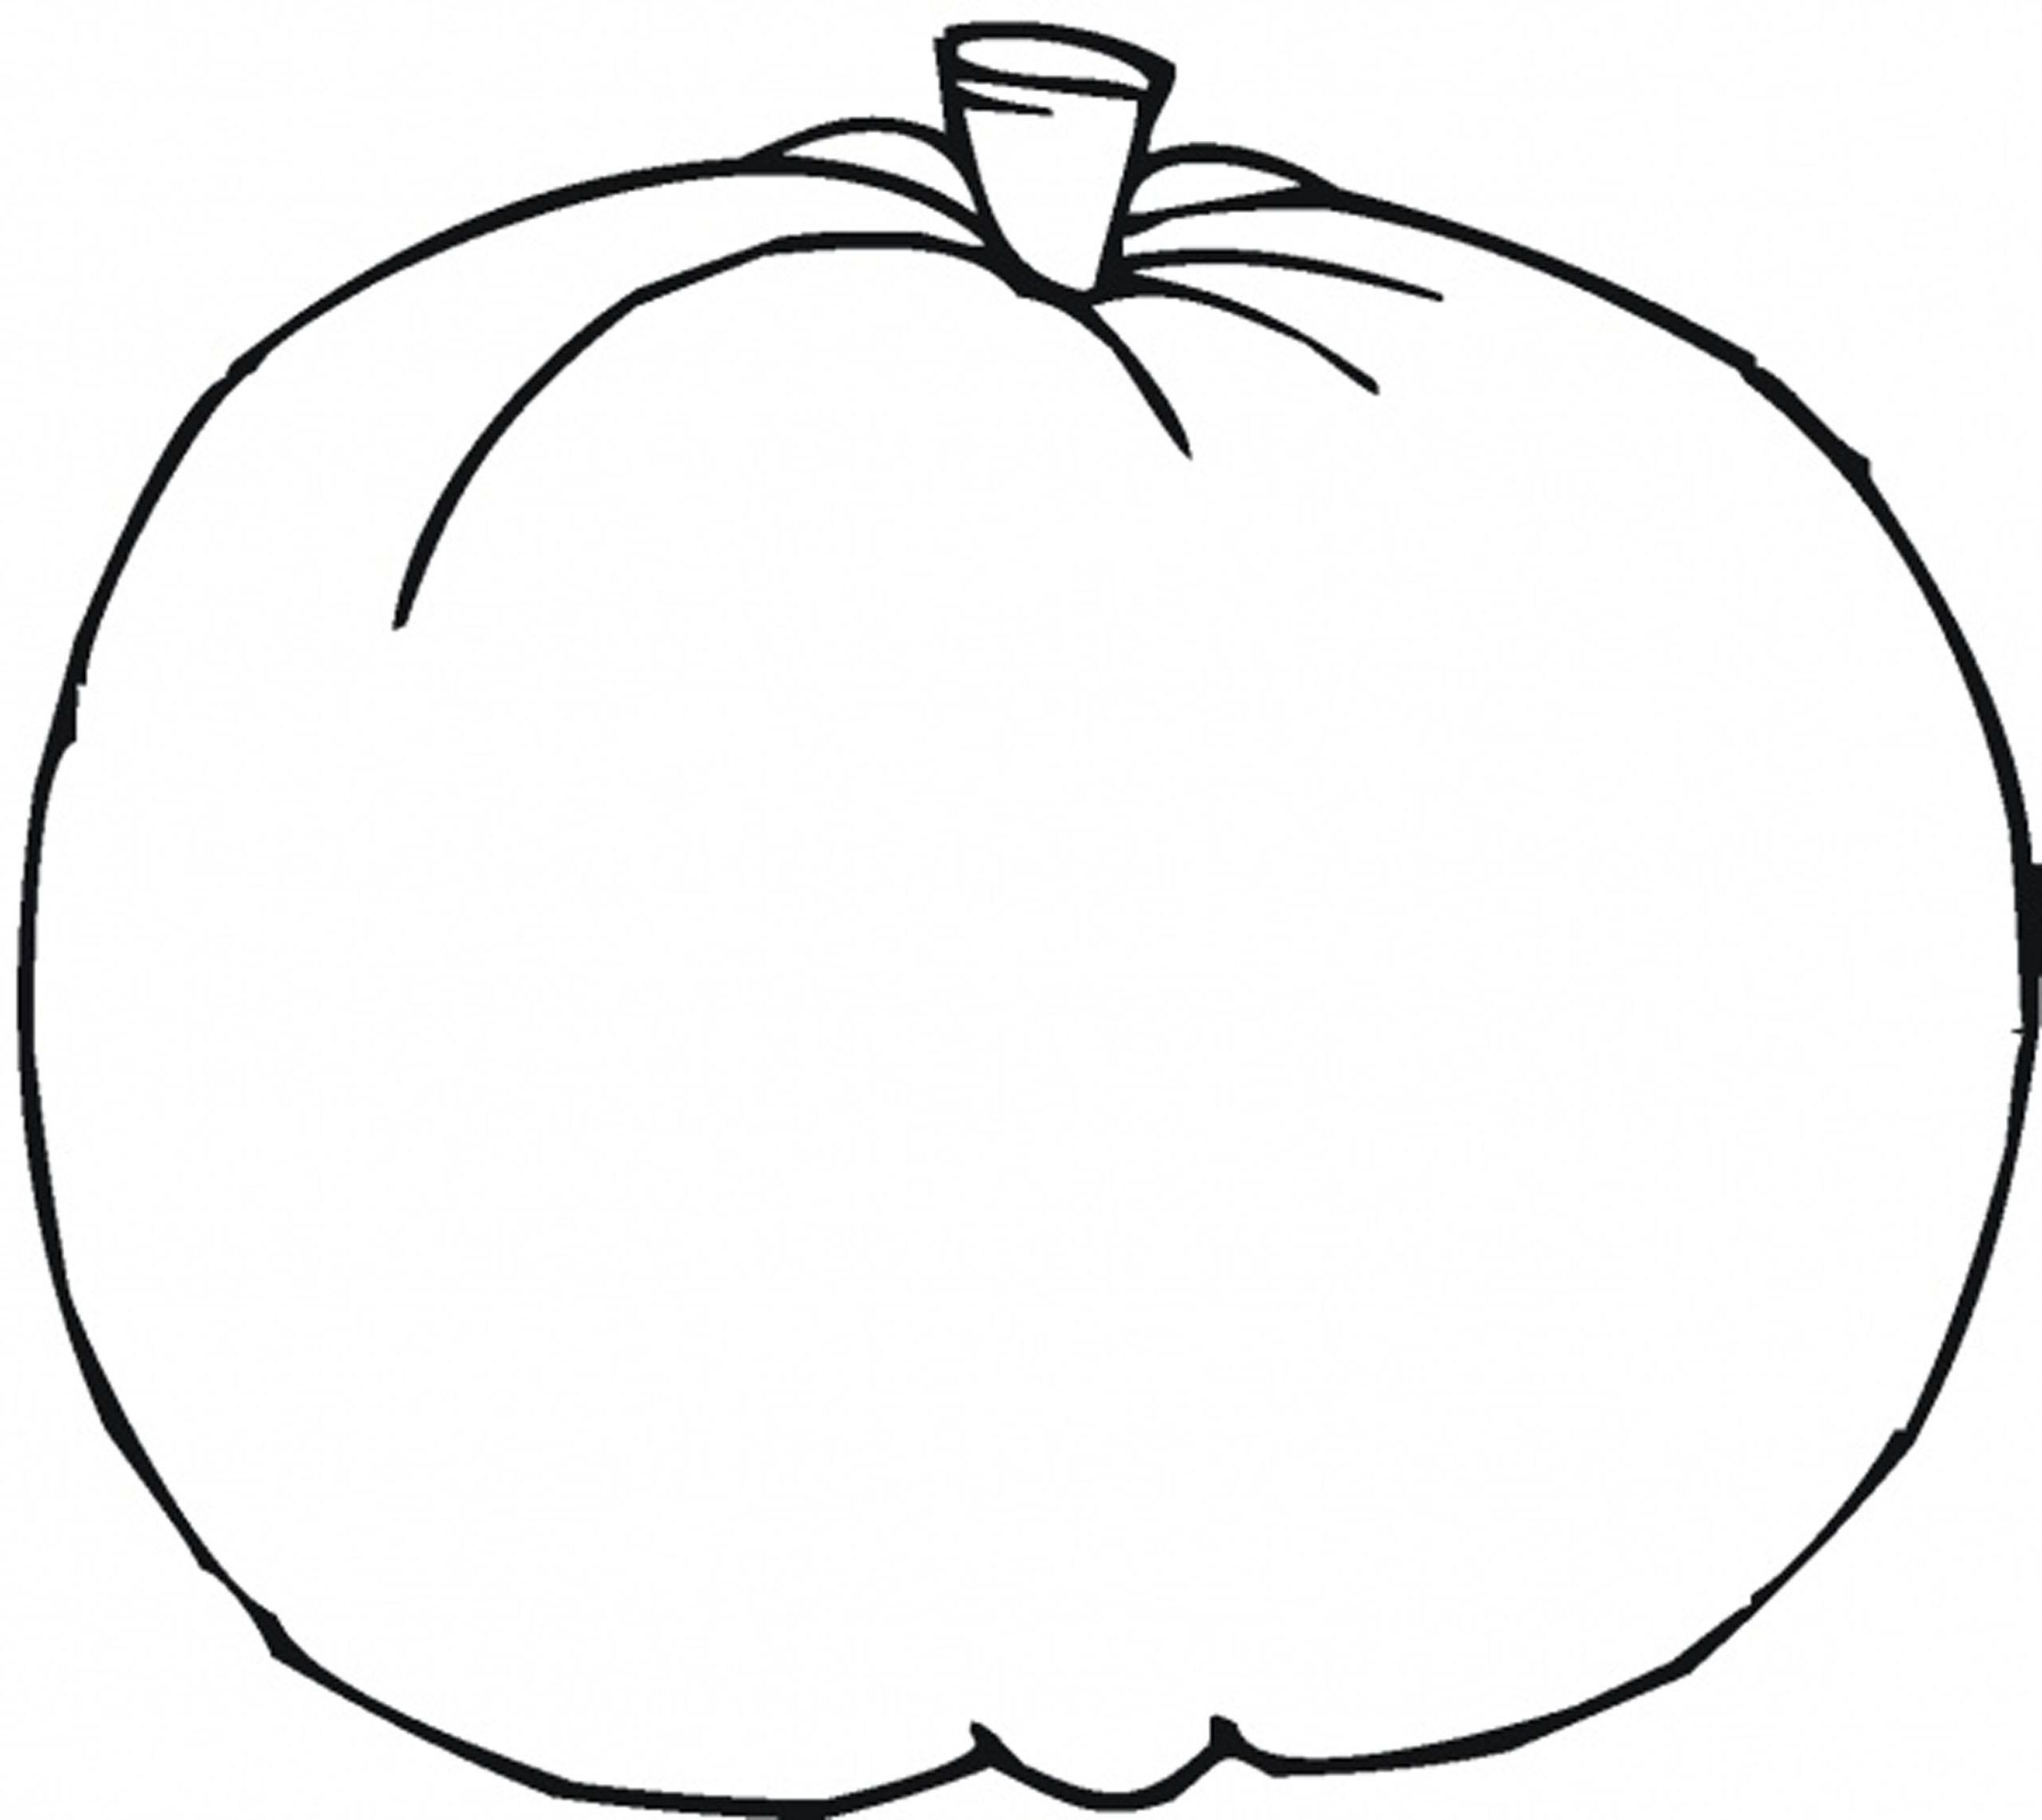 2550x2273 Pumpkin Coloring Page Awesome Free Coloring Pages Of Pumpkin Shape